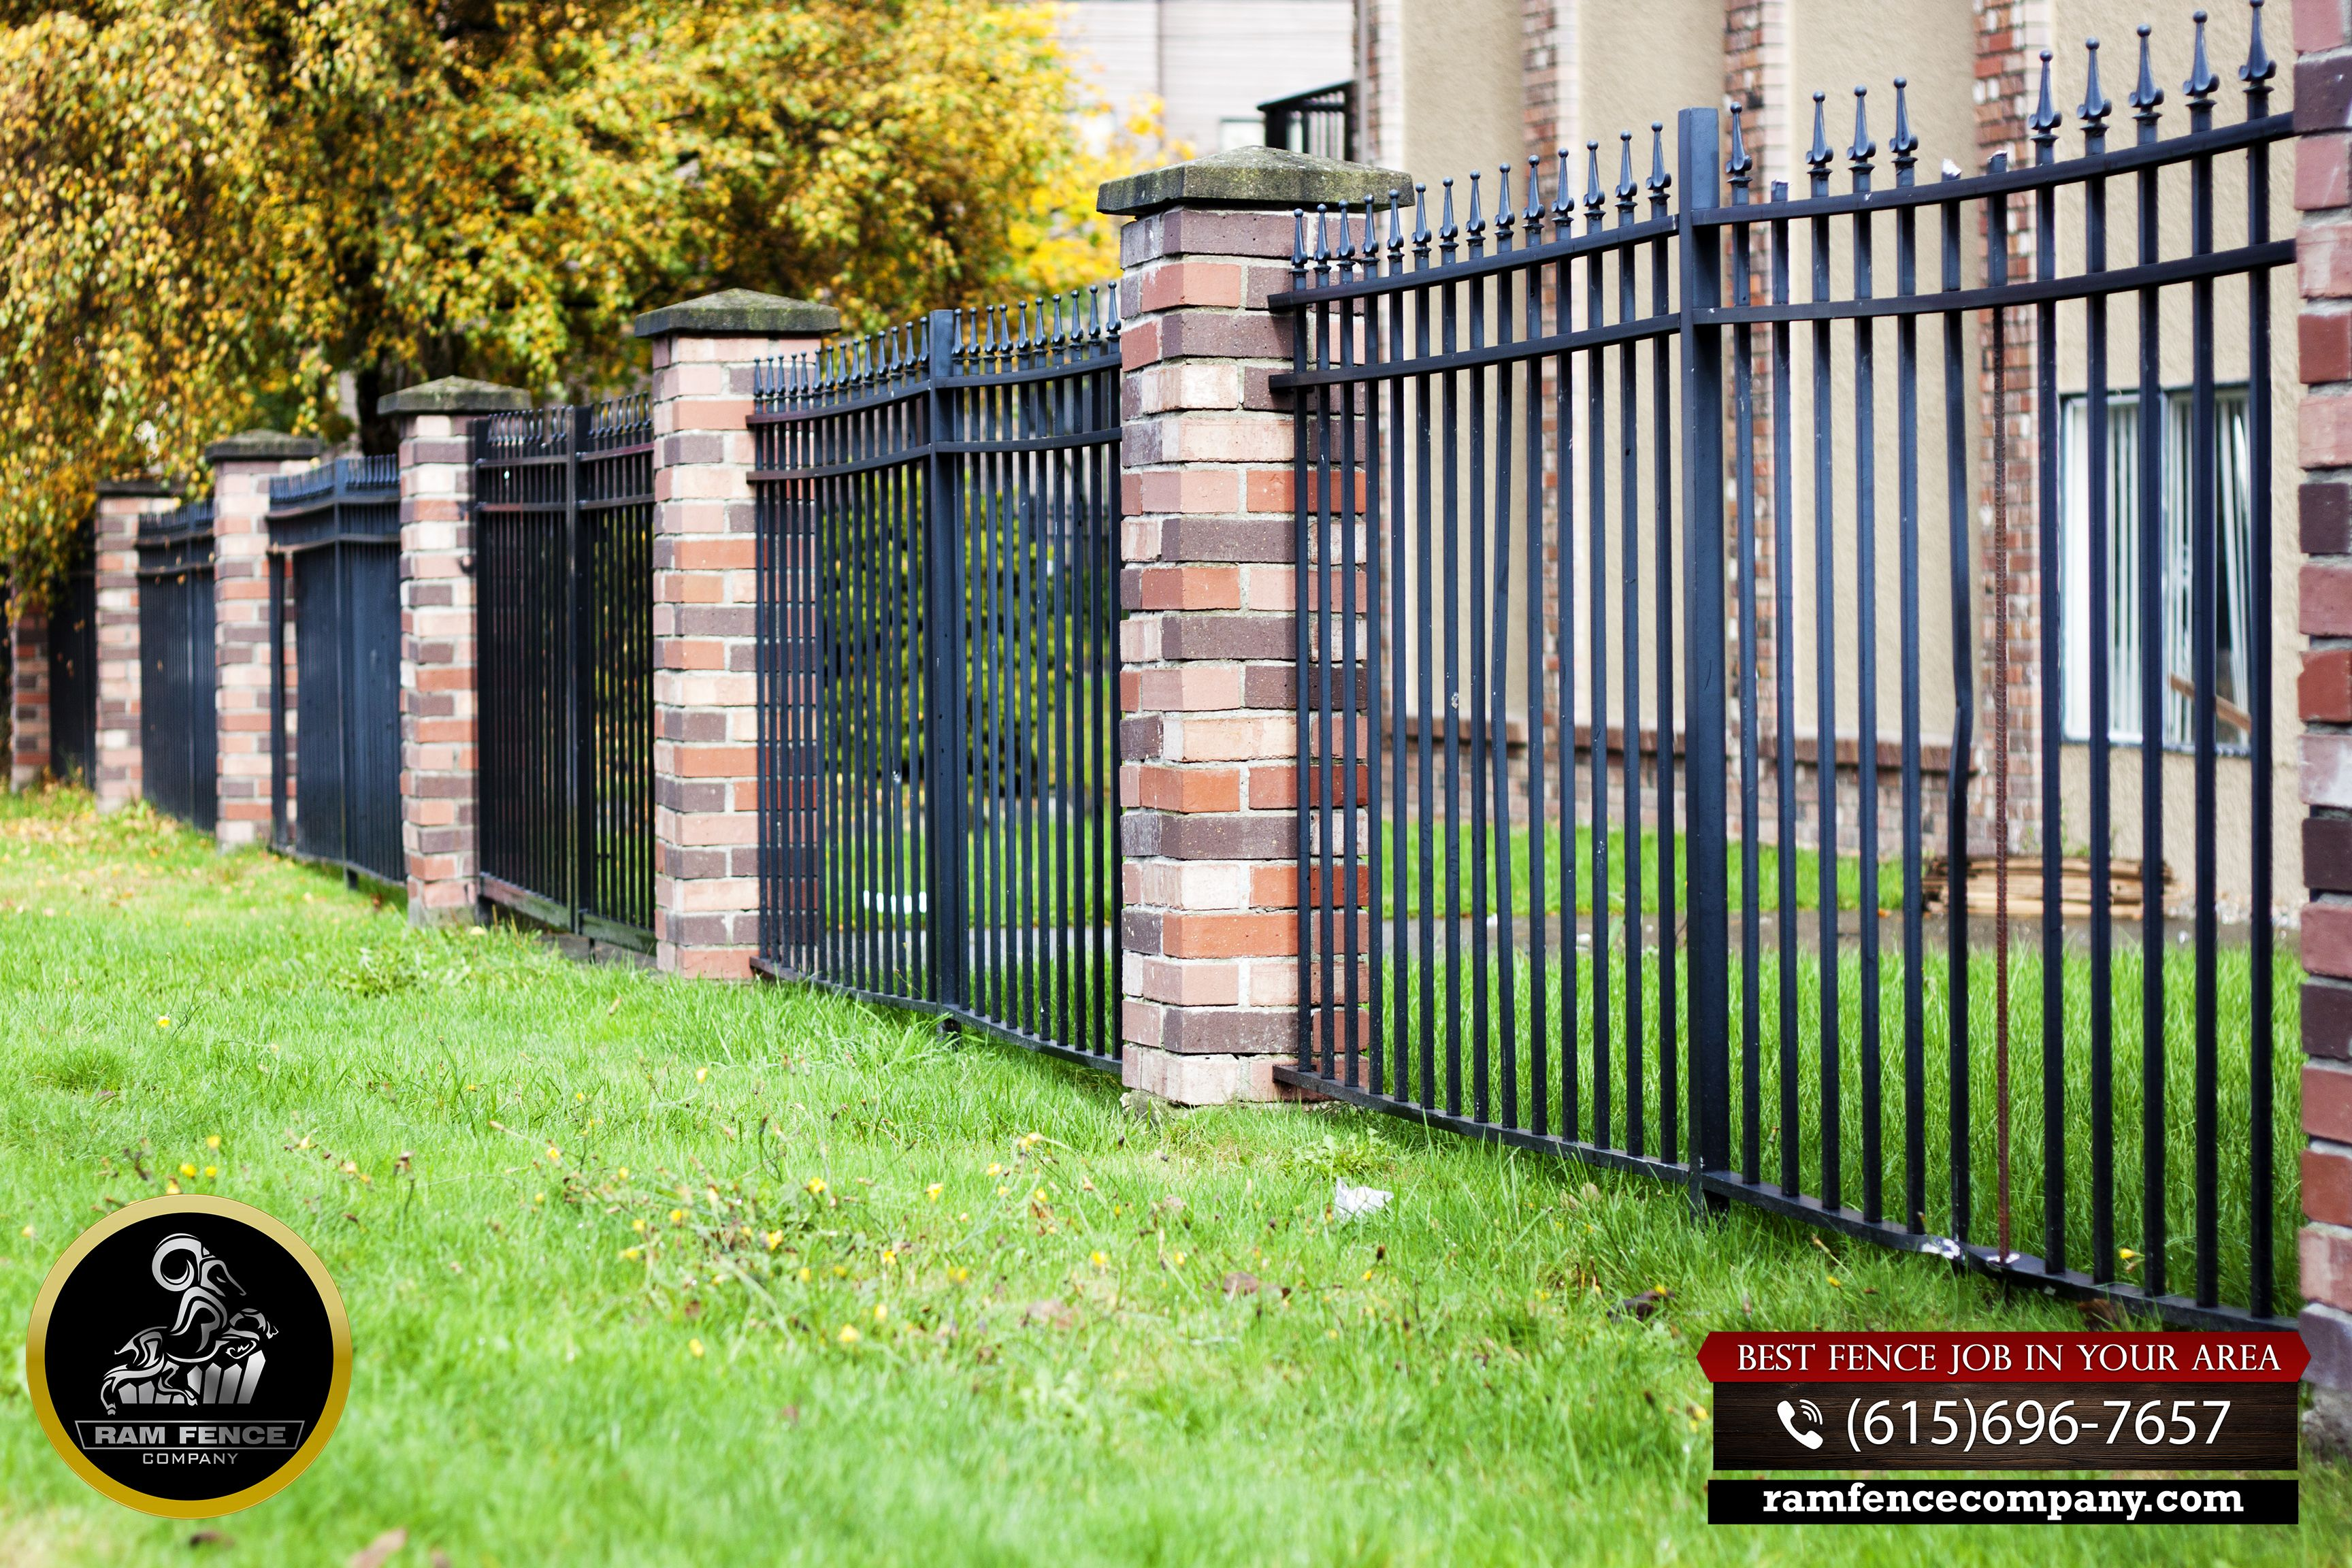 We Make Professional Installations Of Wood Fencing Vinyl Fencing Aluminium Fencing Metal Fencing Chain Link Fenc Security Fence Home Security Home Defense